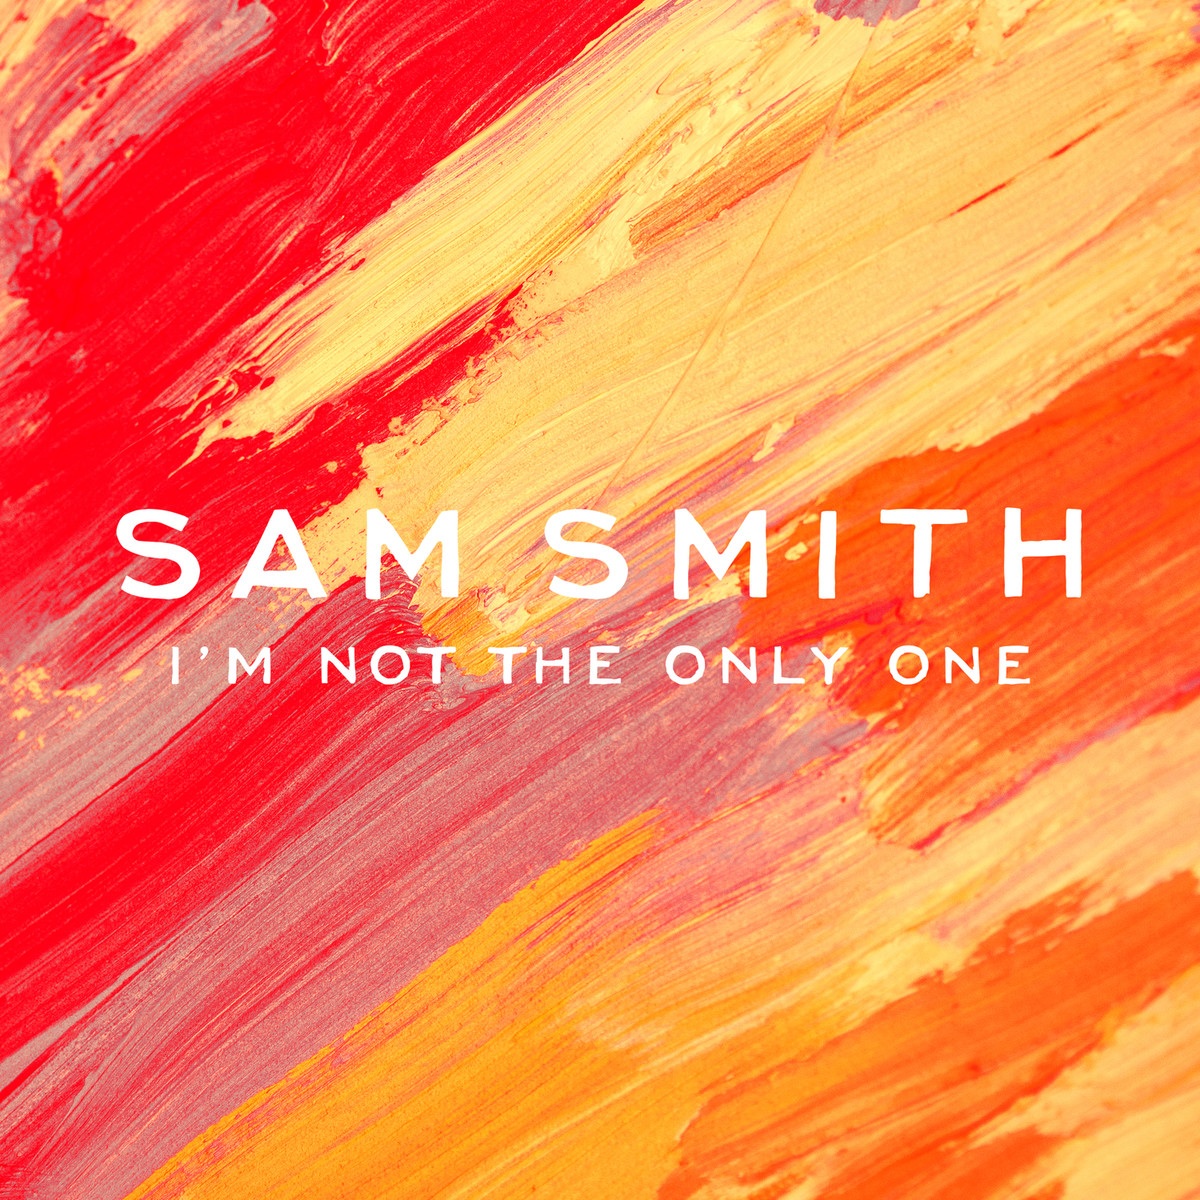 sam smith im not the only one download